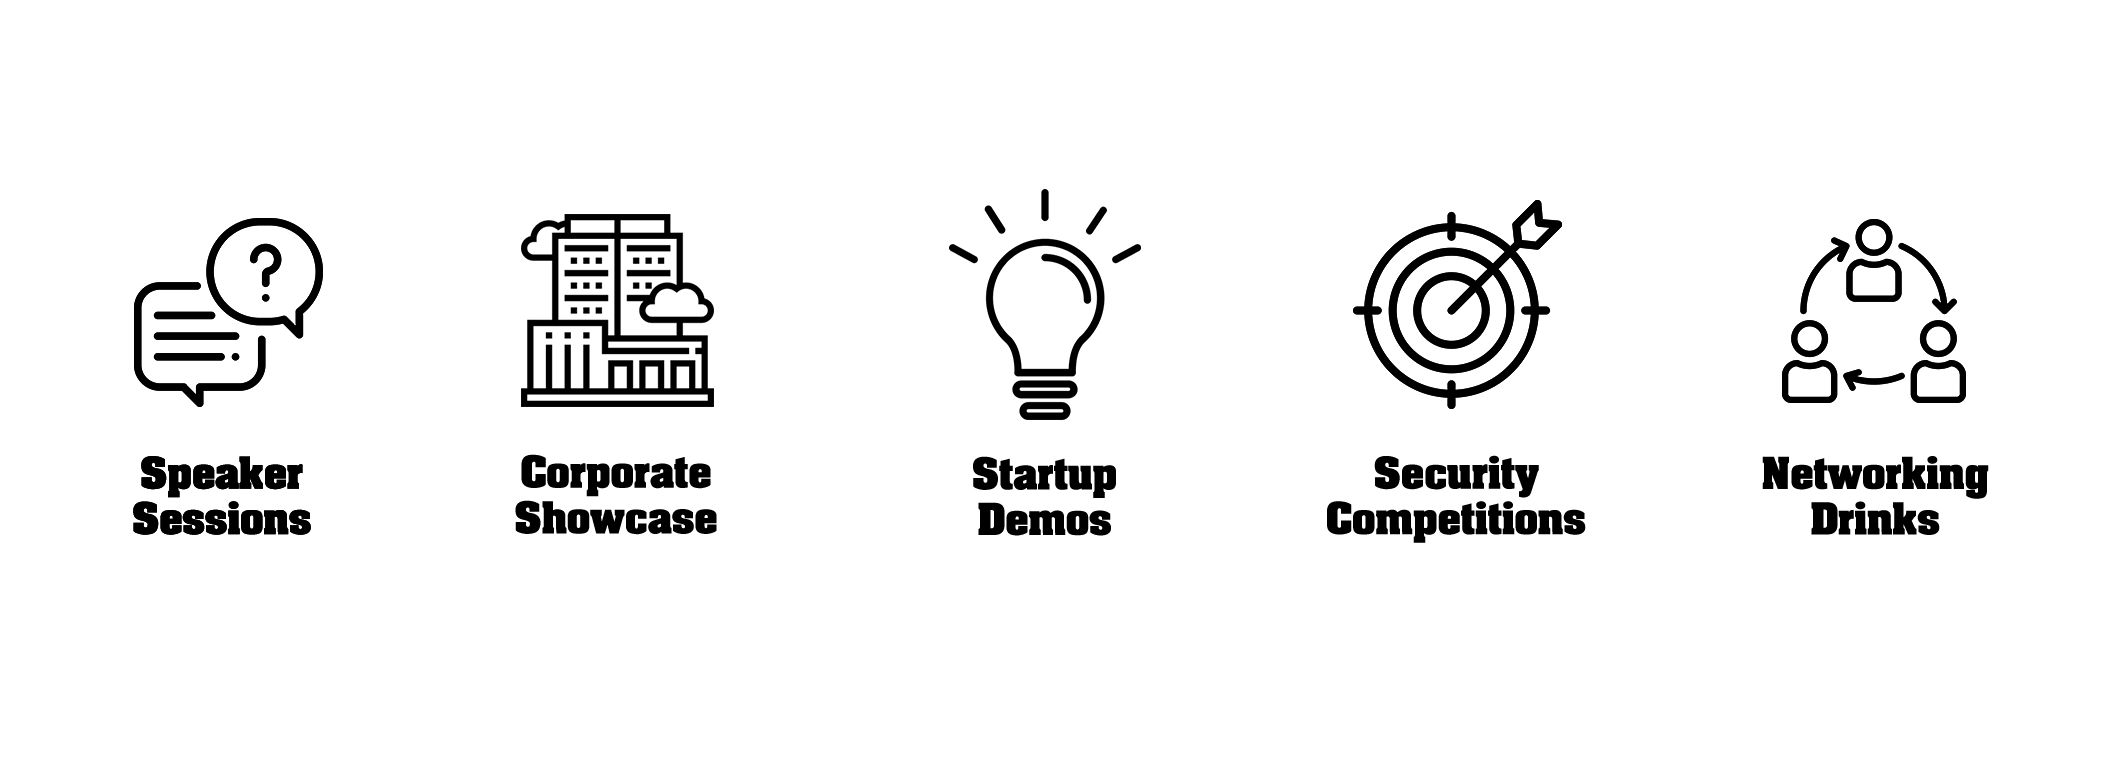 icon_banner_transparent.png